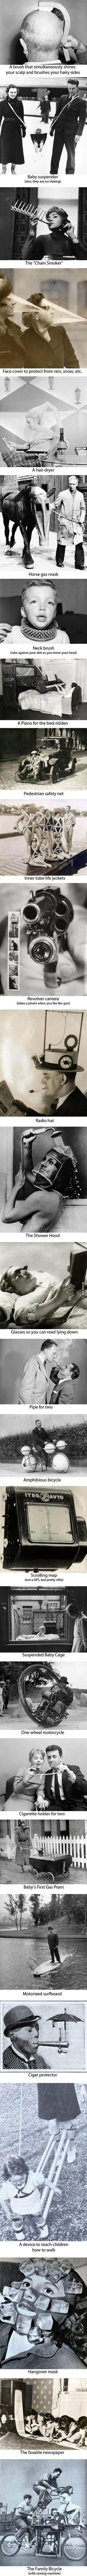 27 crazy inventions from the past. My personal favourites are the lying down glasses and the baby cage.